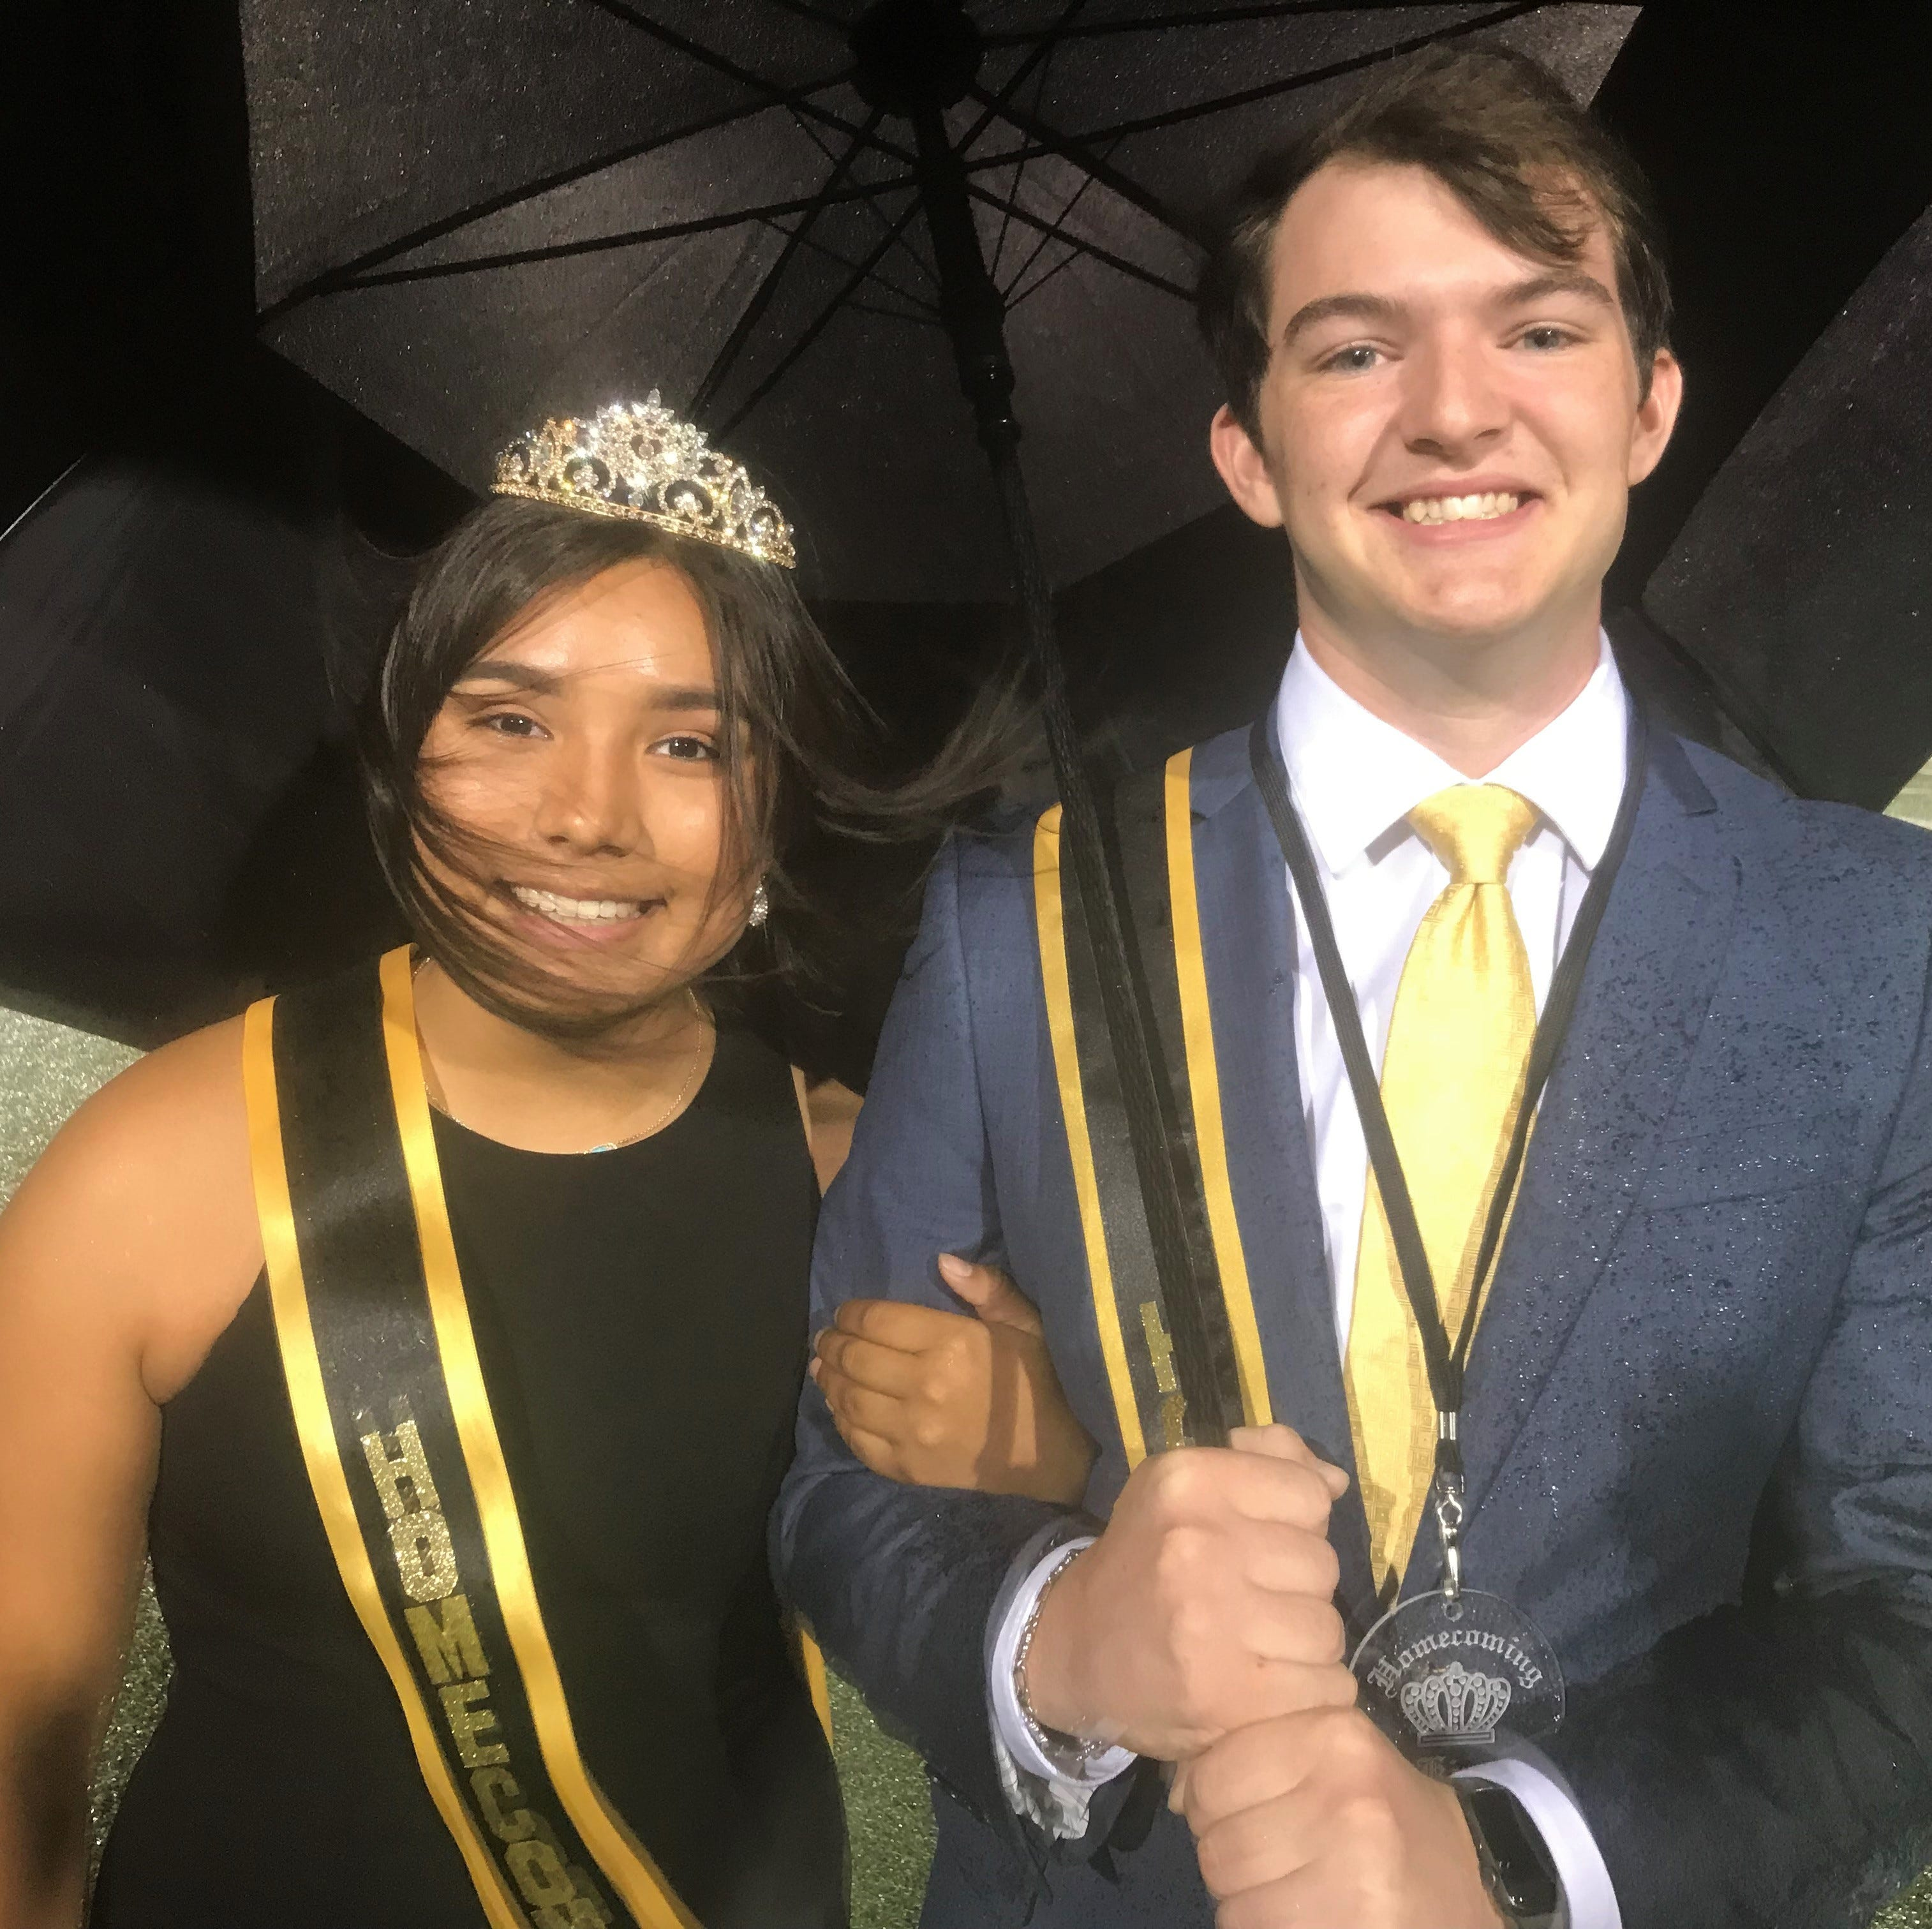 Gabriella Hernandez was named queen and Dakota Drennan king at halftime of Abilene High's homecoming football game against Midland High on Friday night at Shotwell Stadium. Other queen nominees were Givan Walker, Rylie Savage, Jazmine Pecina and Morgan Wheeler. Other king nominees were James Melson, Noah Perez, J.D. Dugger and Reese Pettijohn.